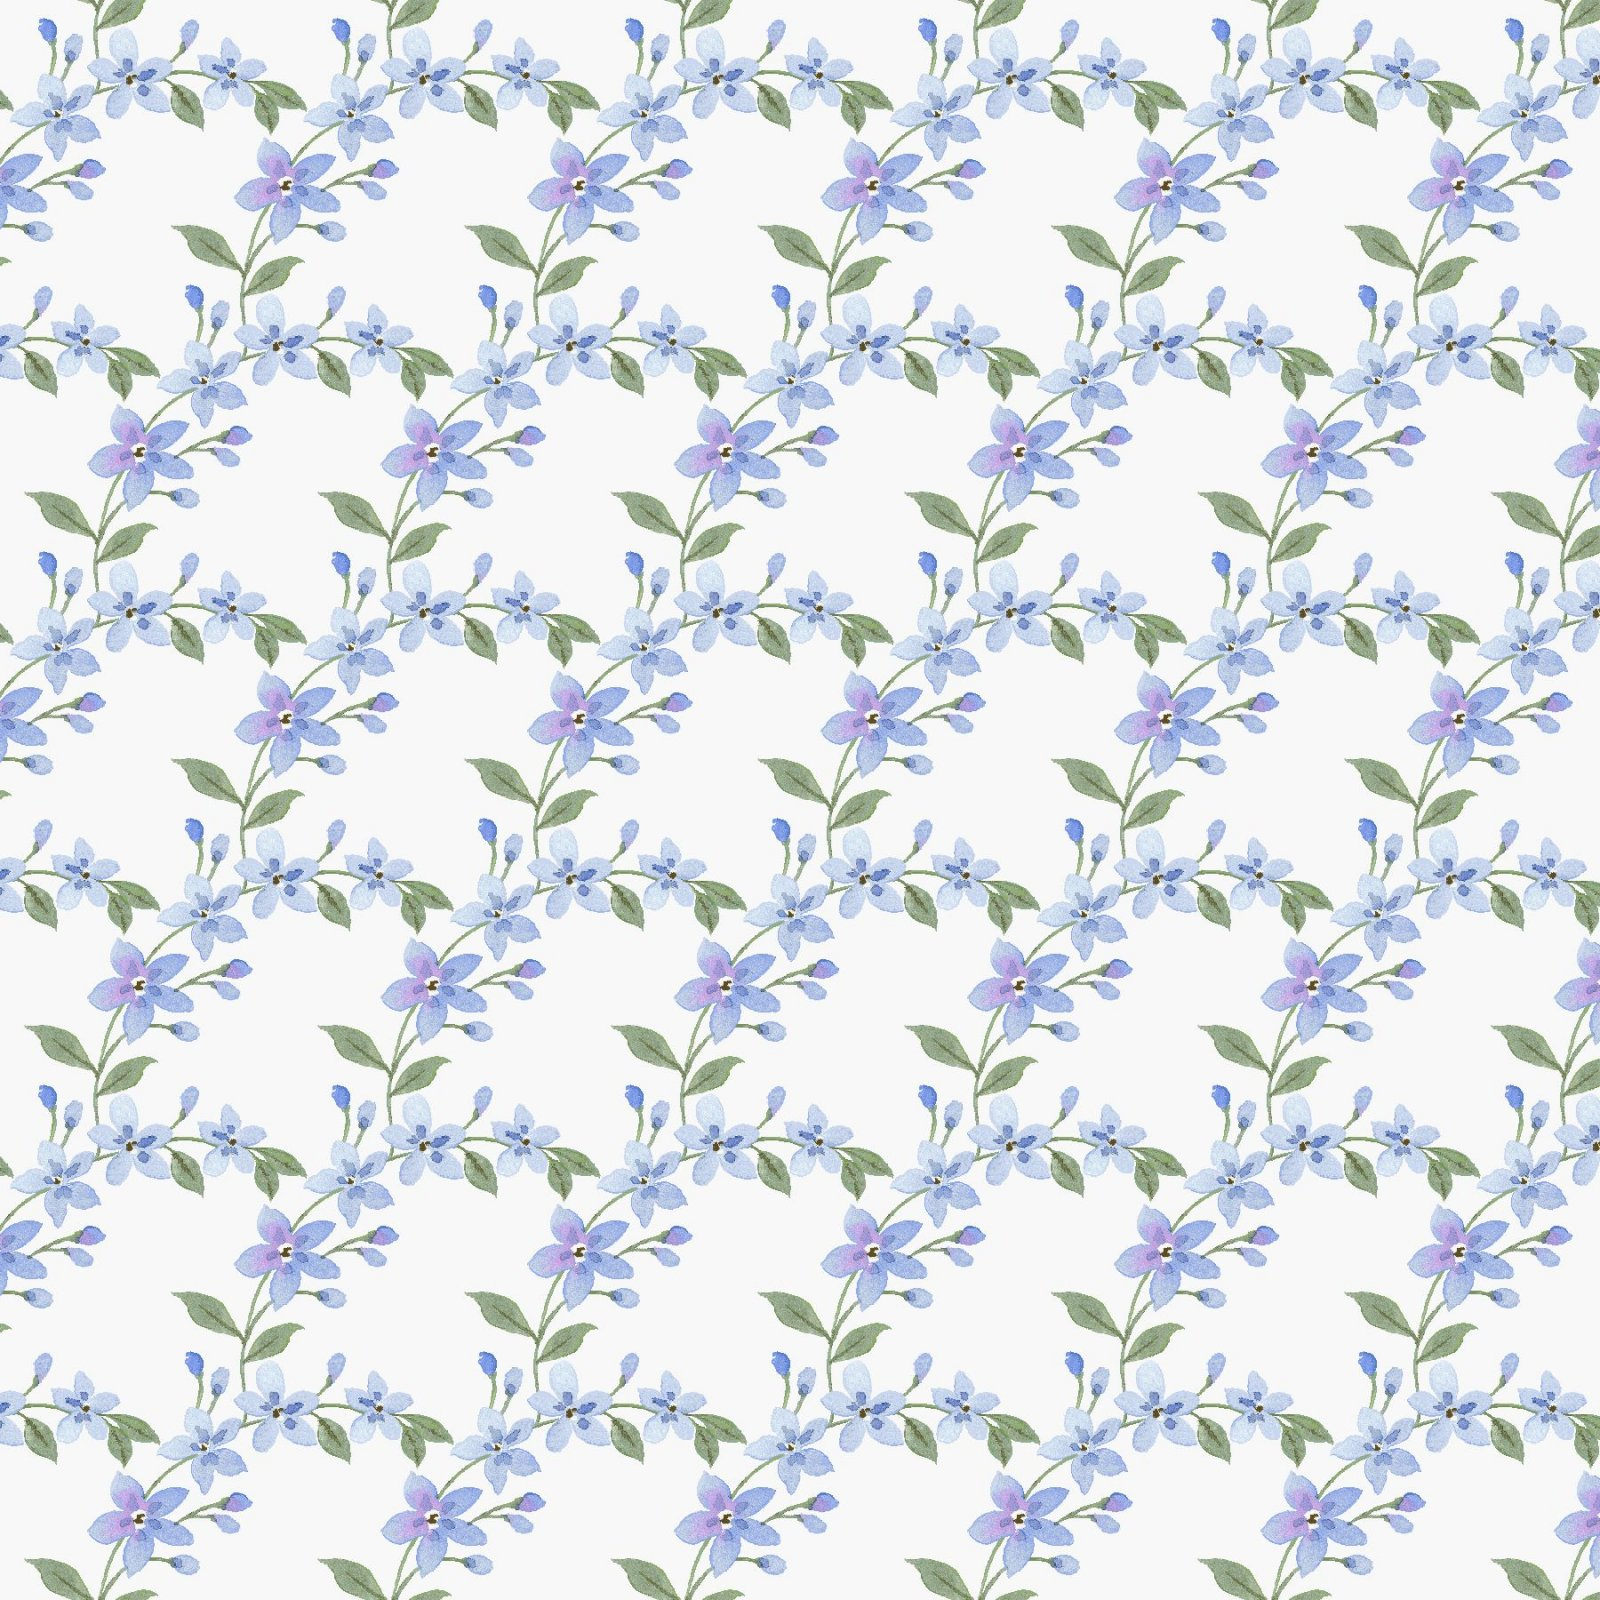 HG-Garden Inspirations 9362-17 Blue - Scalloped Blue Flowers